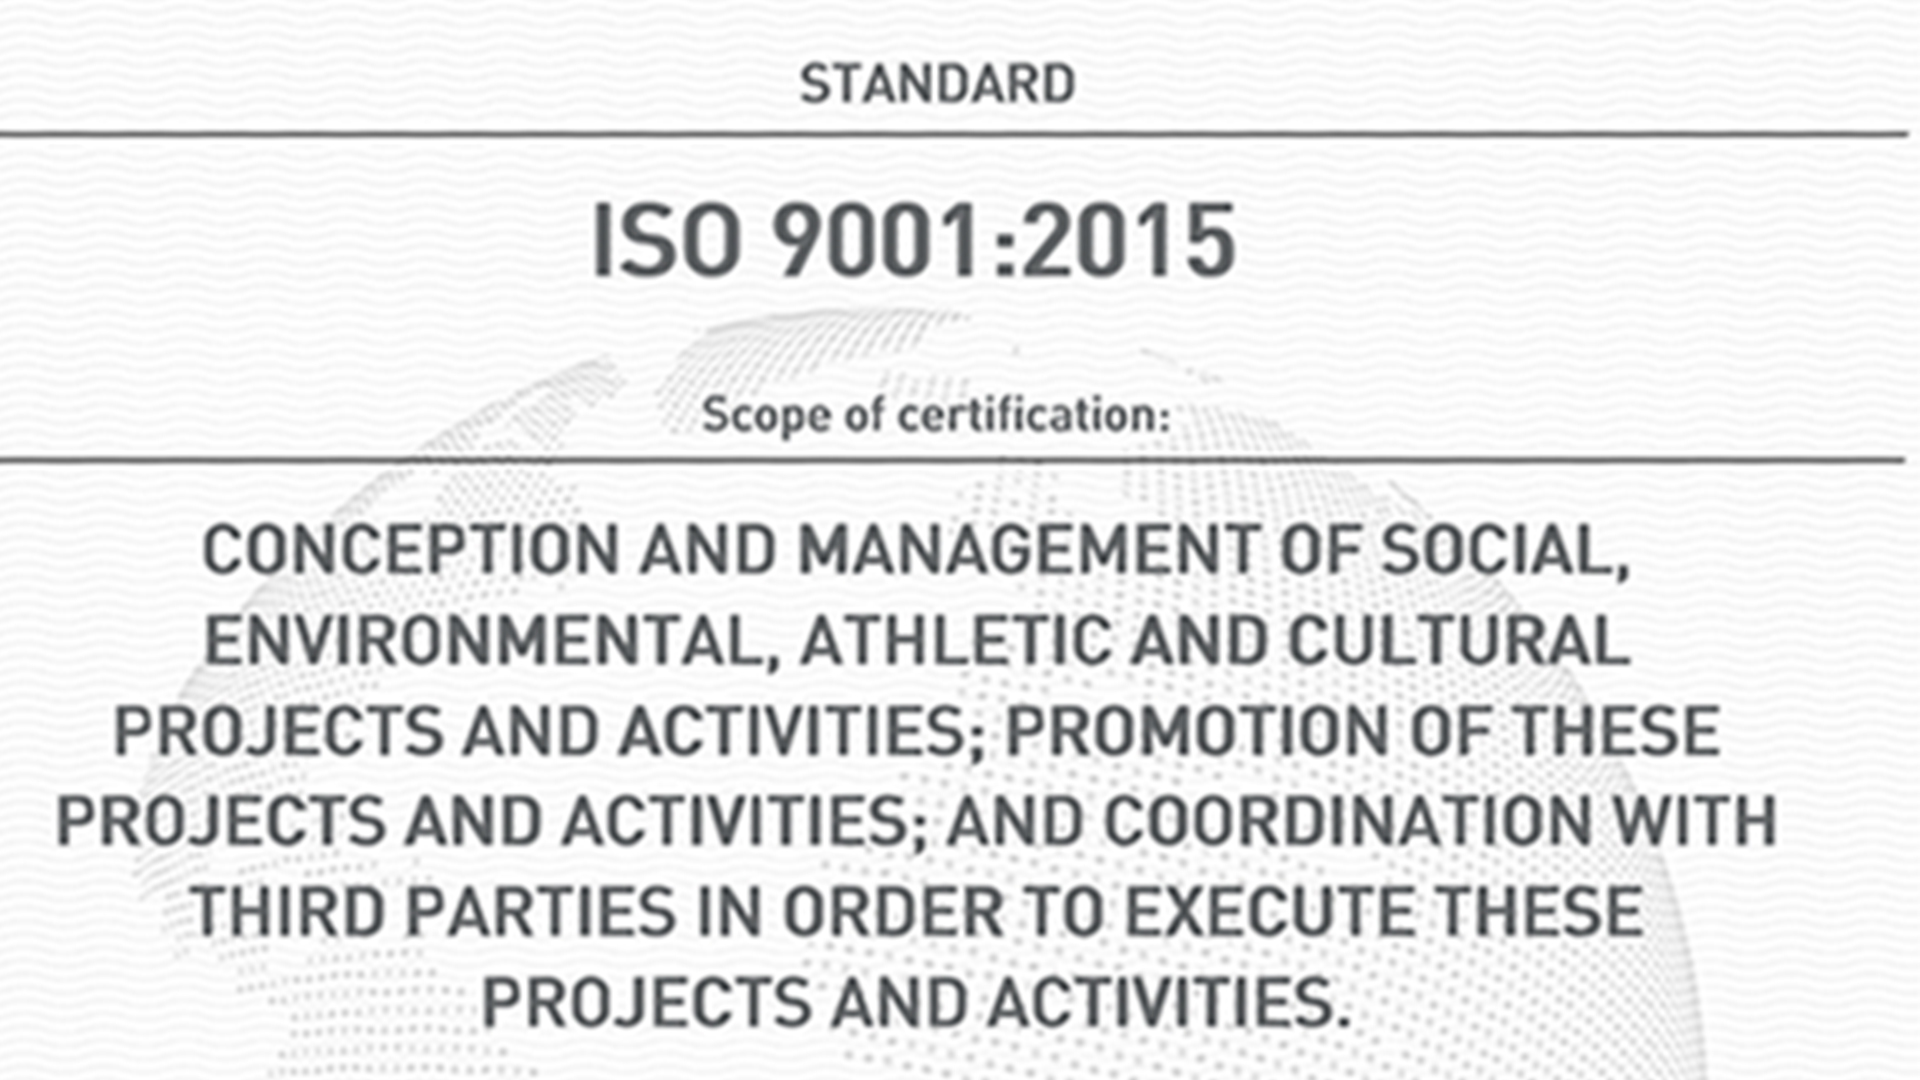 The Foundation is awarded ISO 9001